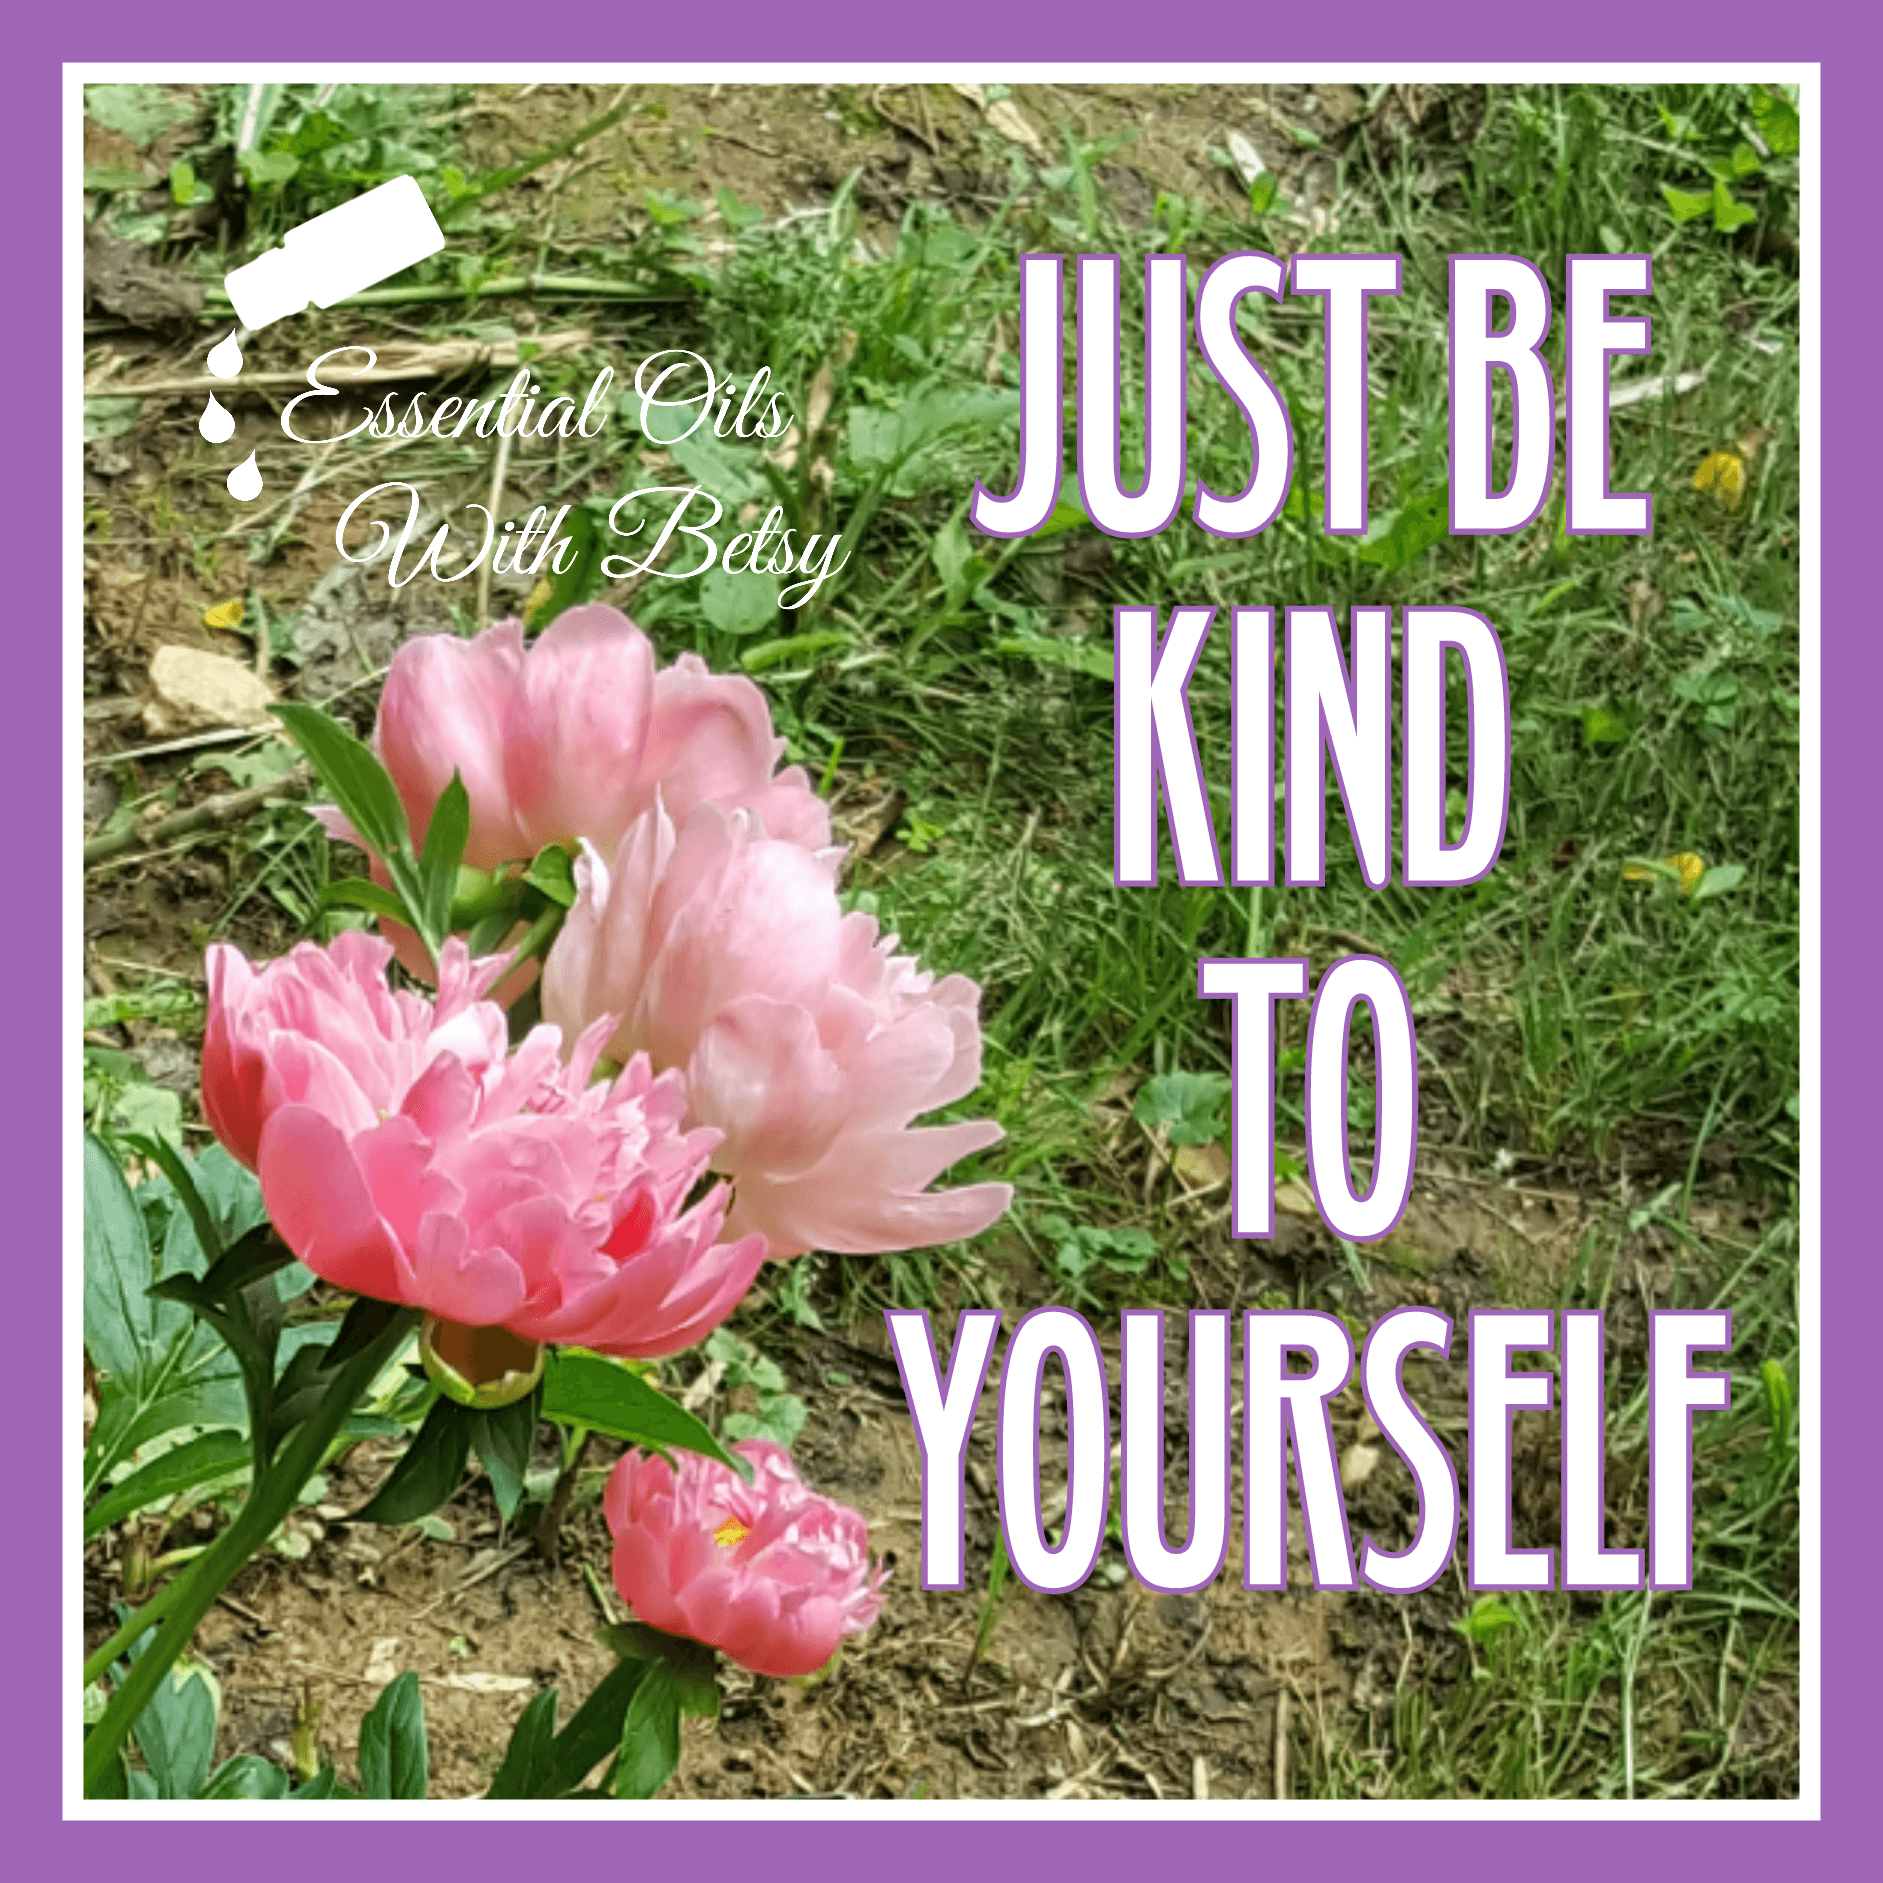 Just be kind to yourself